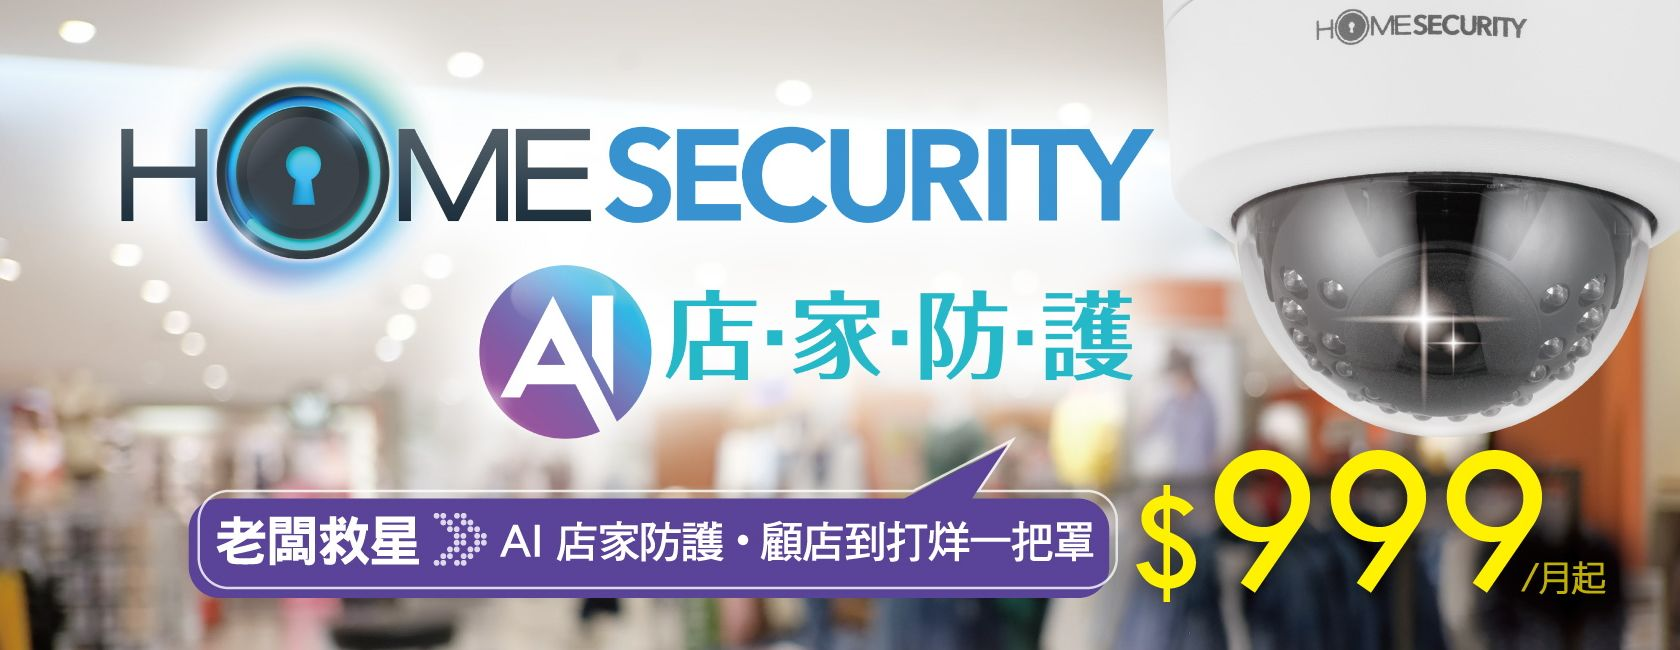 台灣大寬頻 HomeSecurity AI